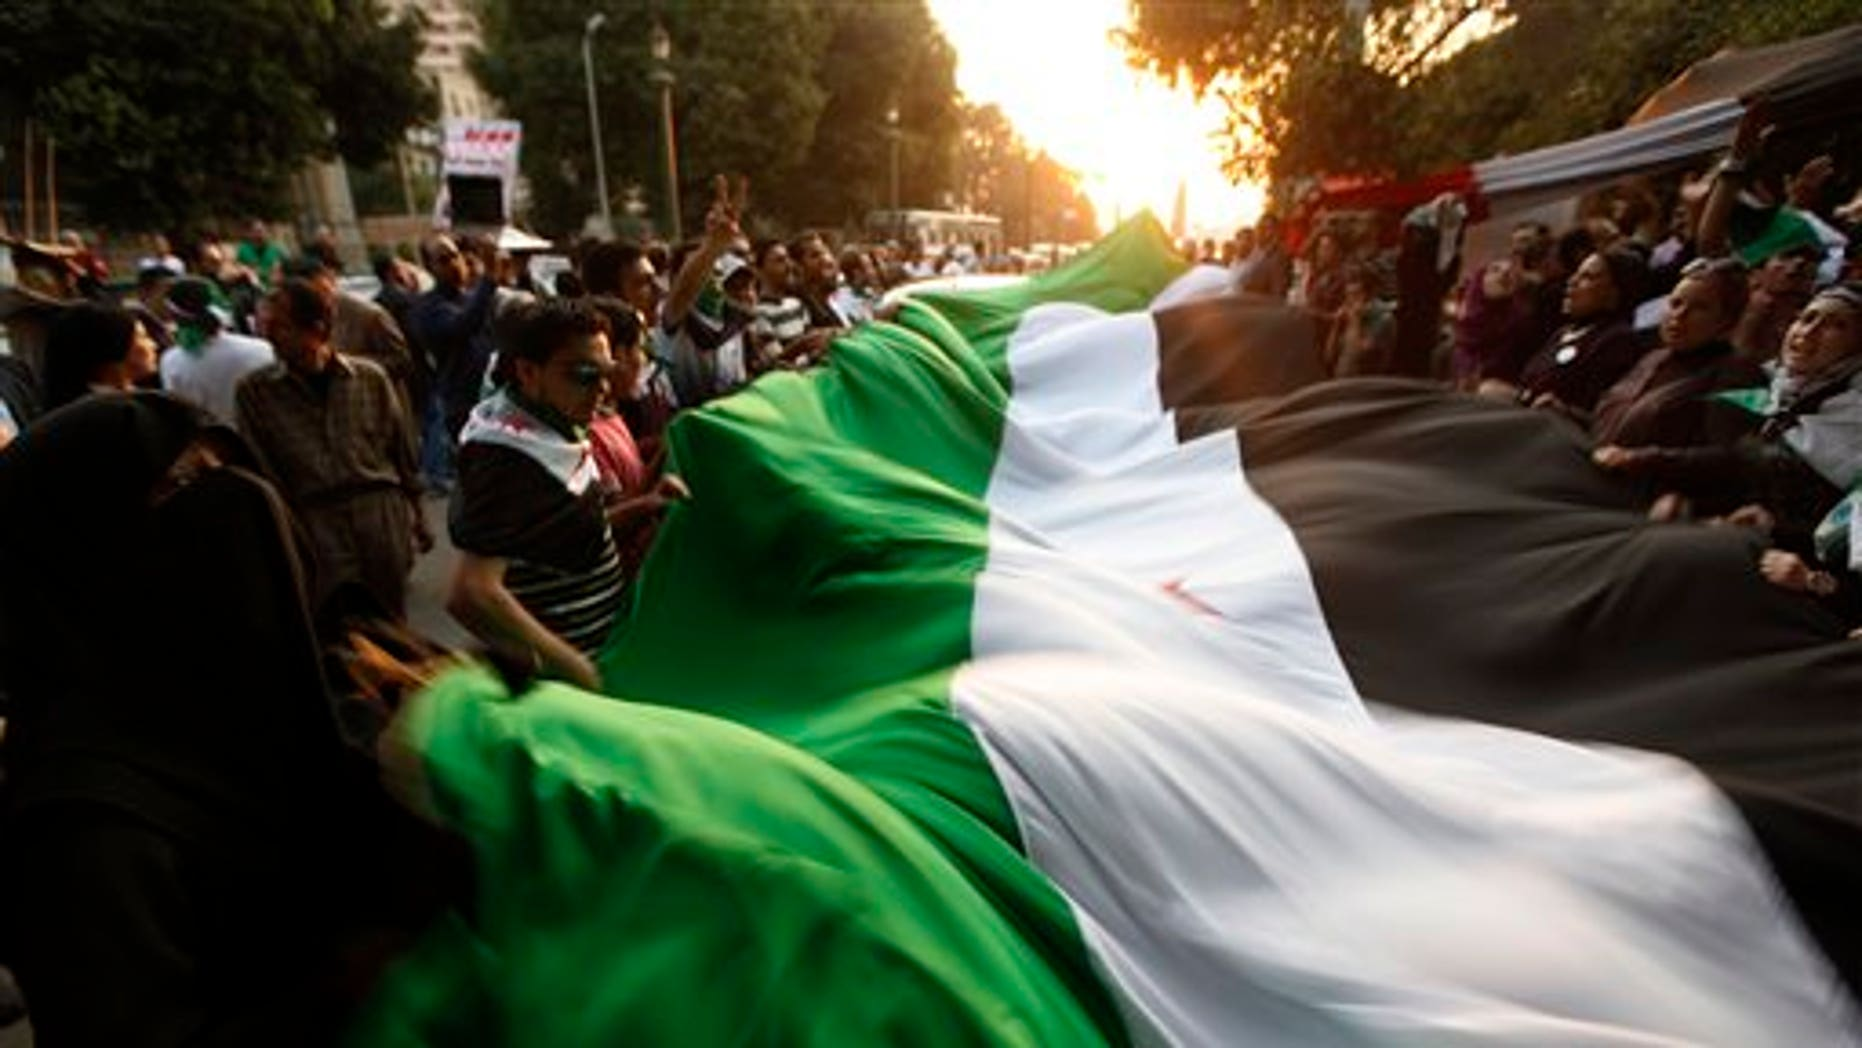 Nov. 2, 2011: Protesters wave a big syrian flag during their anti-Syrian regime protest in front of the Arab league headquarters in Cairo, Egypt. Over 100 people protested outside the Arab League's Cairo headquarters where foreign ministers met Wednesday, waving the tri-colored Syrian flag and chanting slogans against Assad.